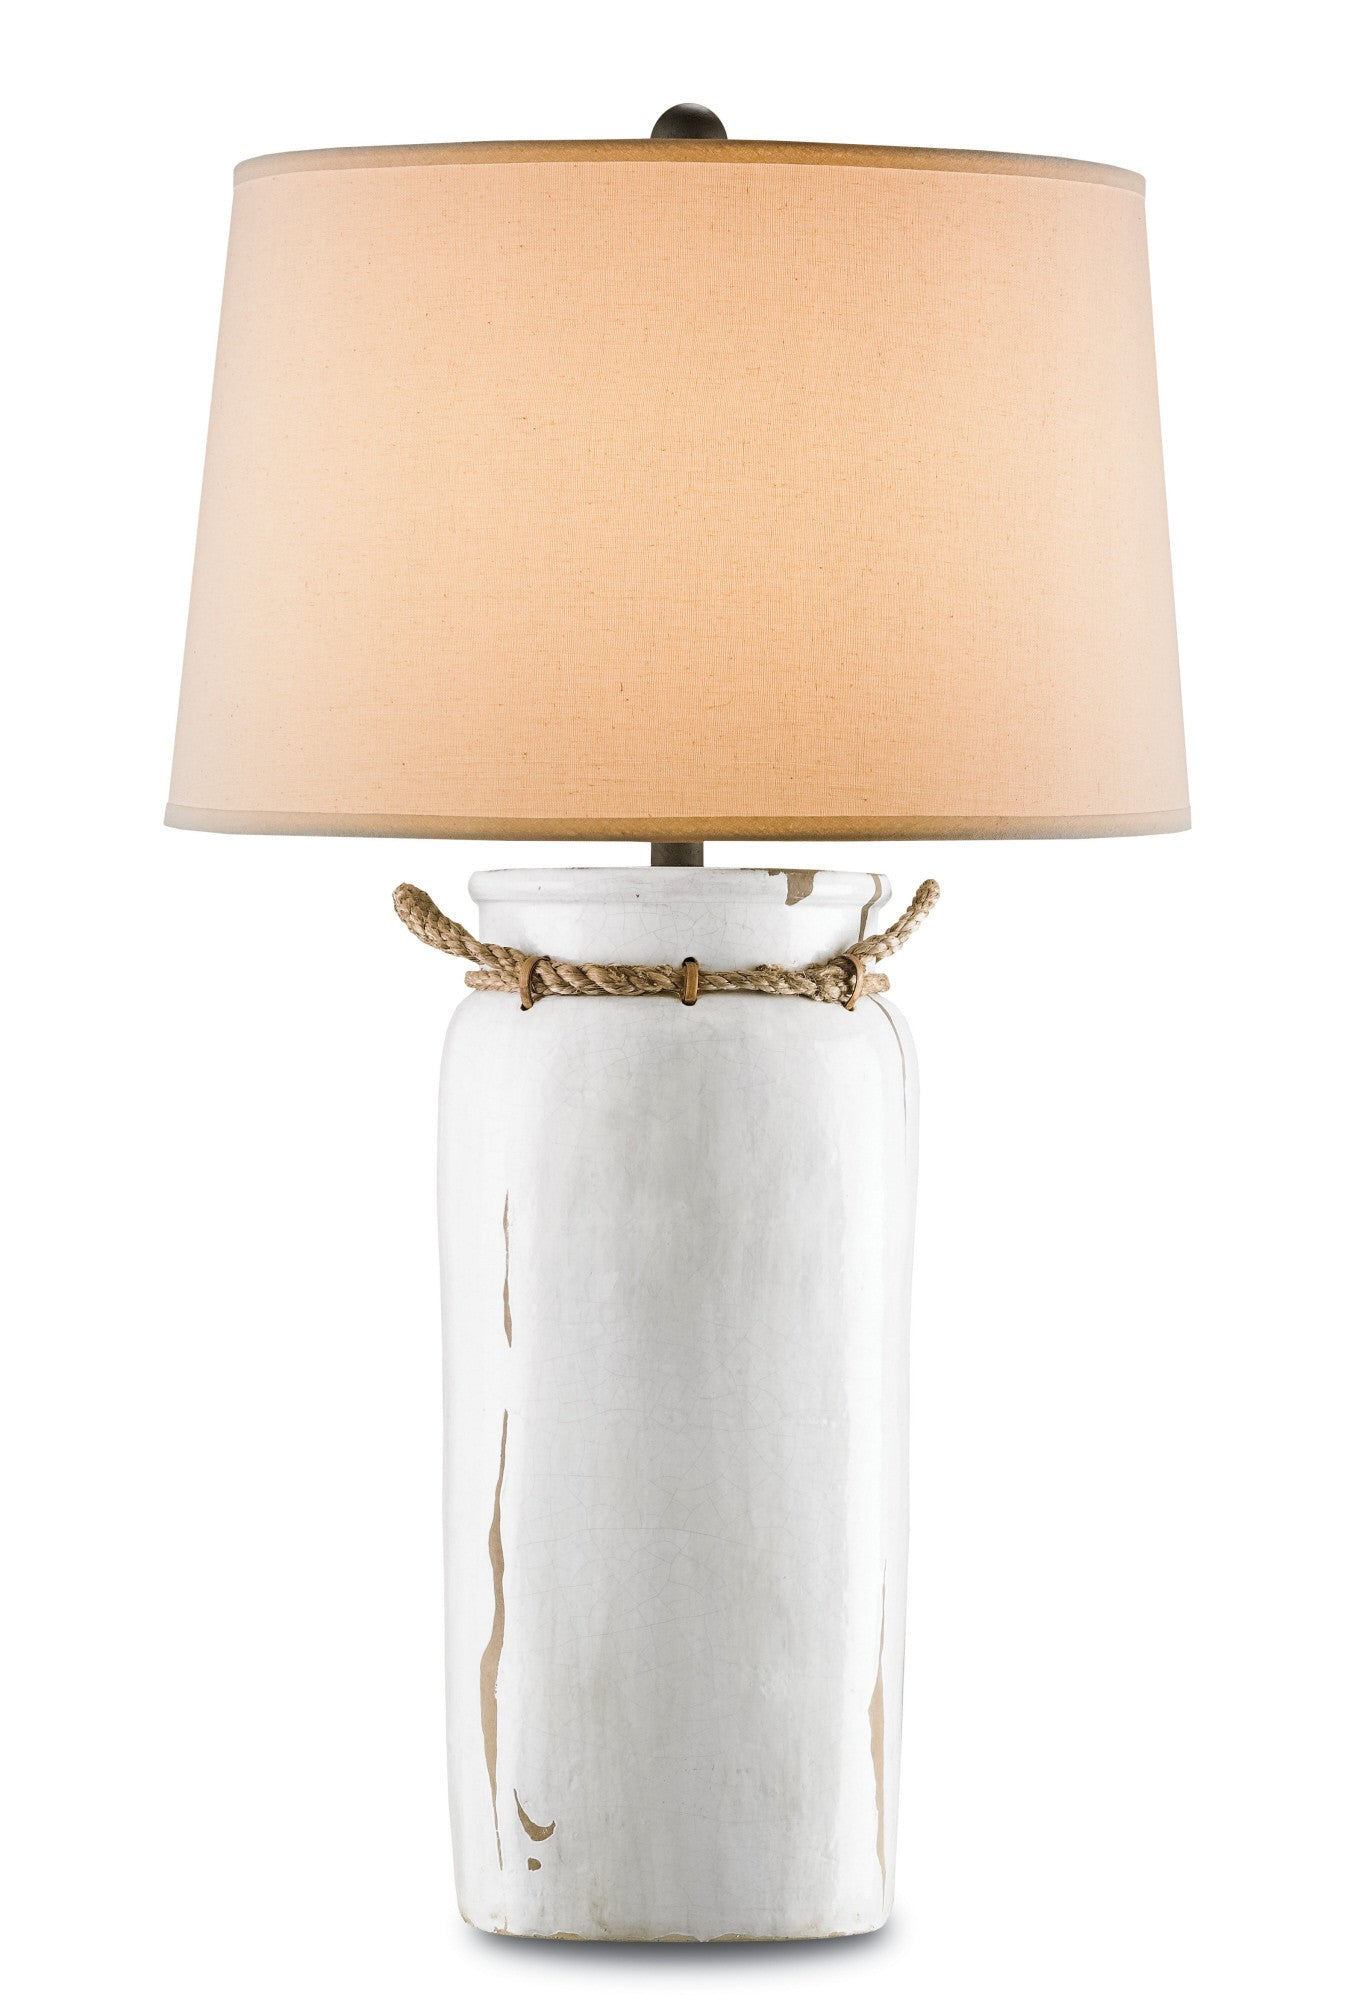 Sailaway Table Lamp Design By Currey Amp Company Burke Decor